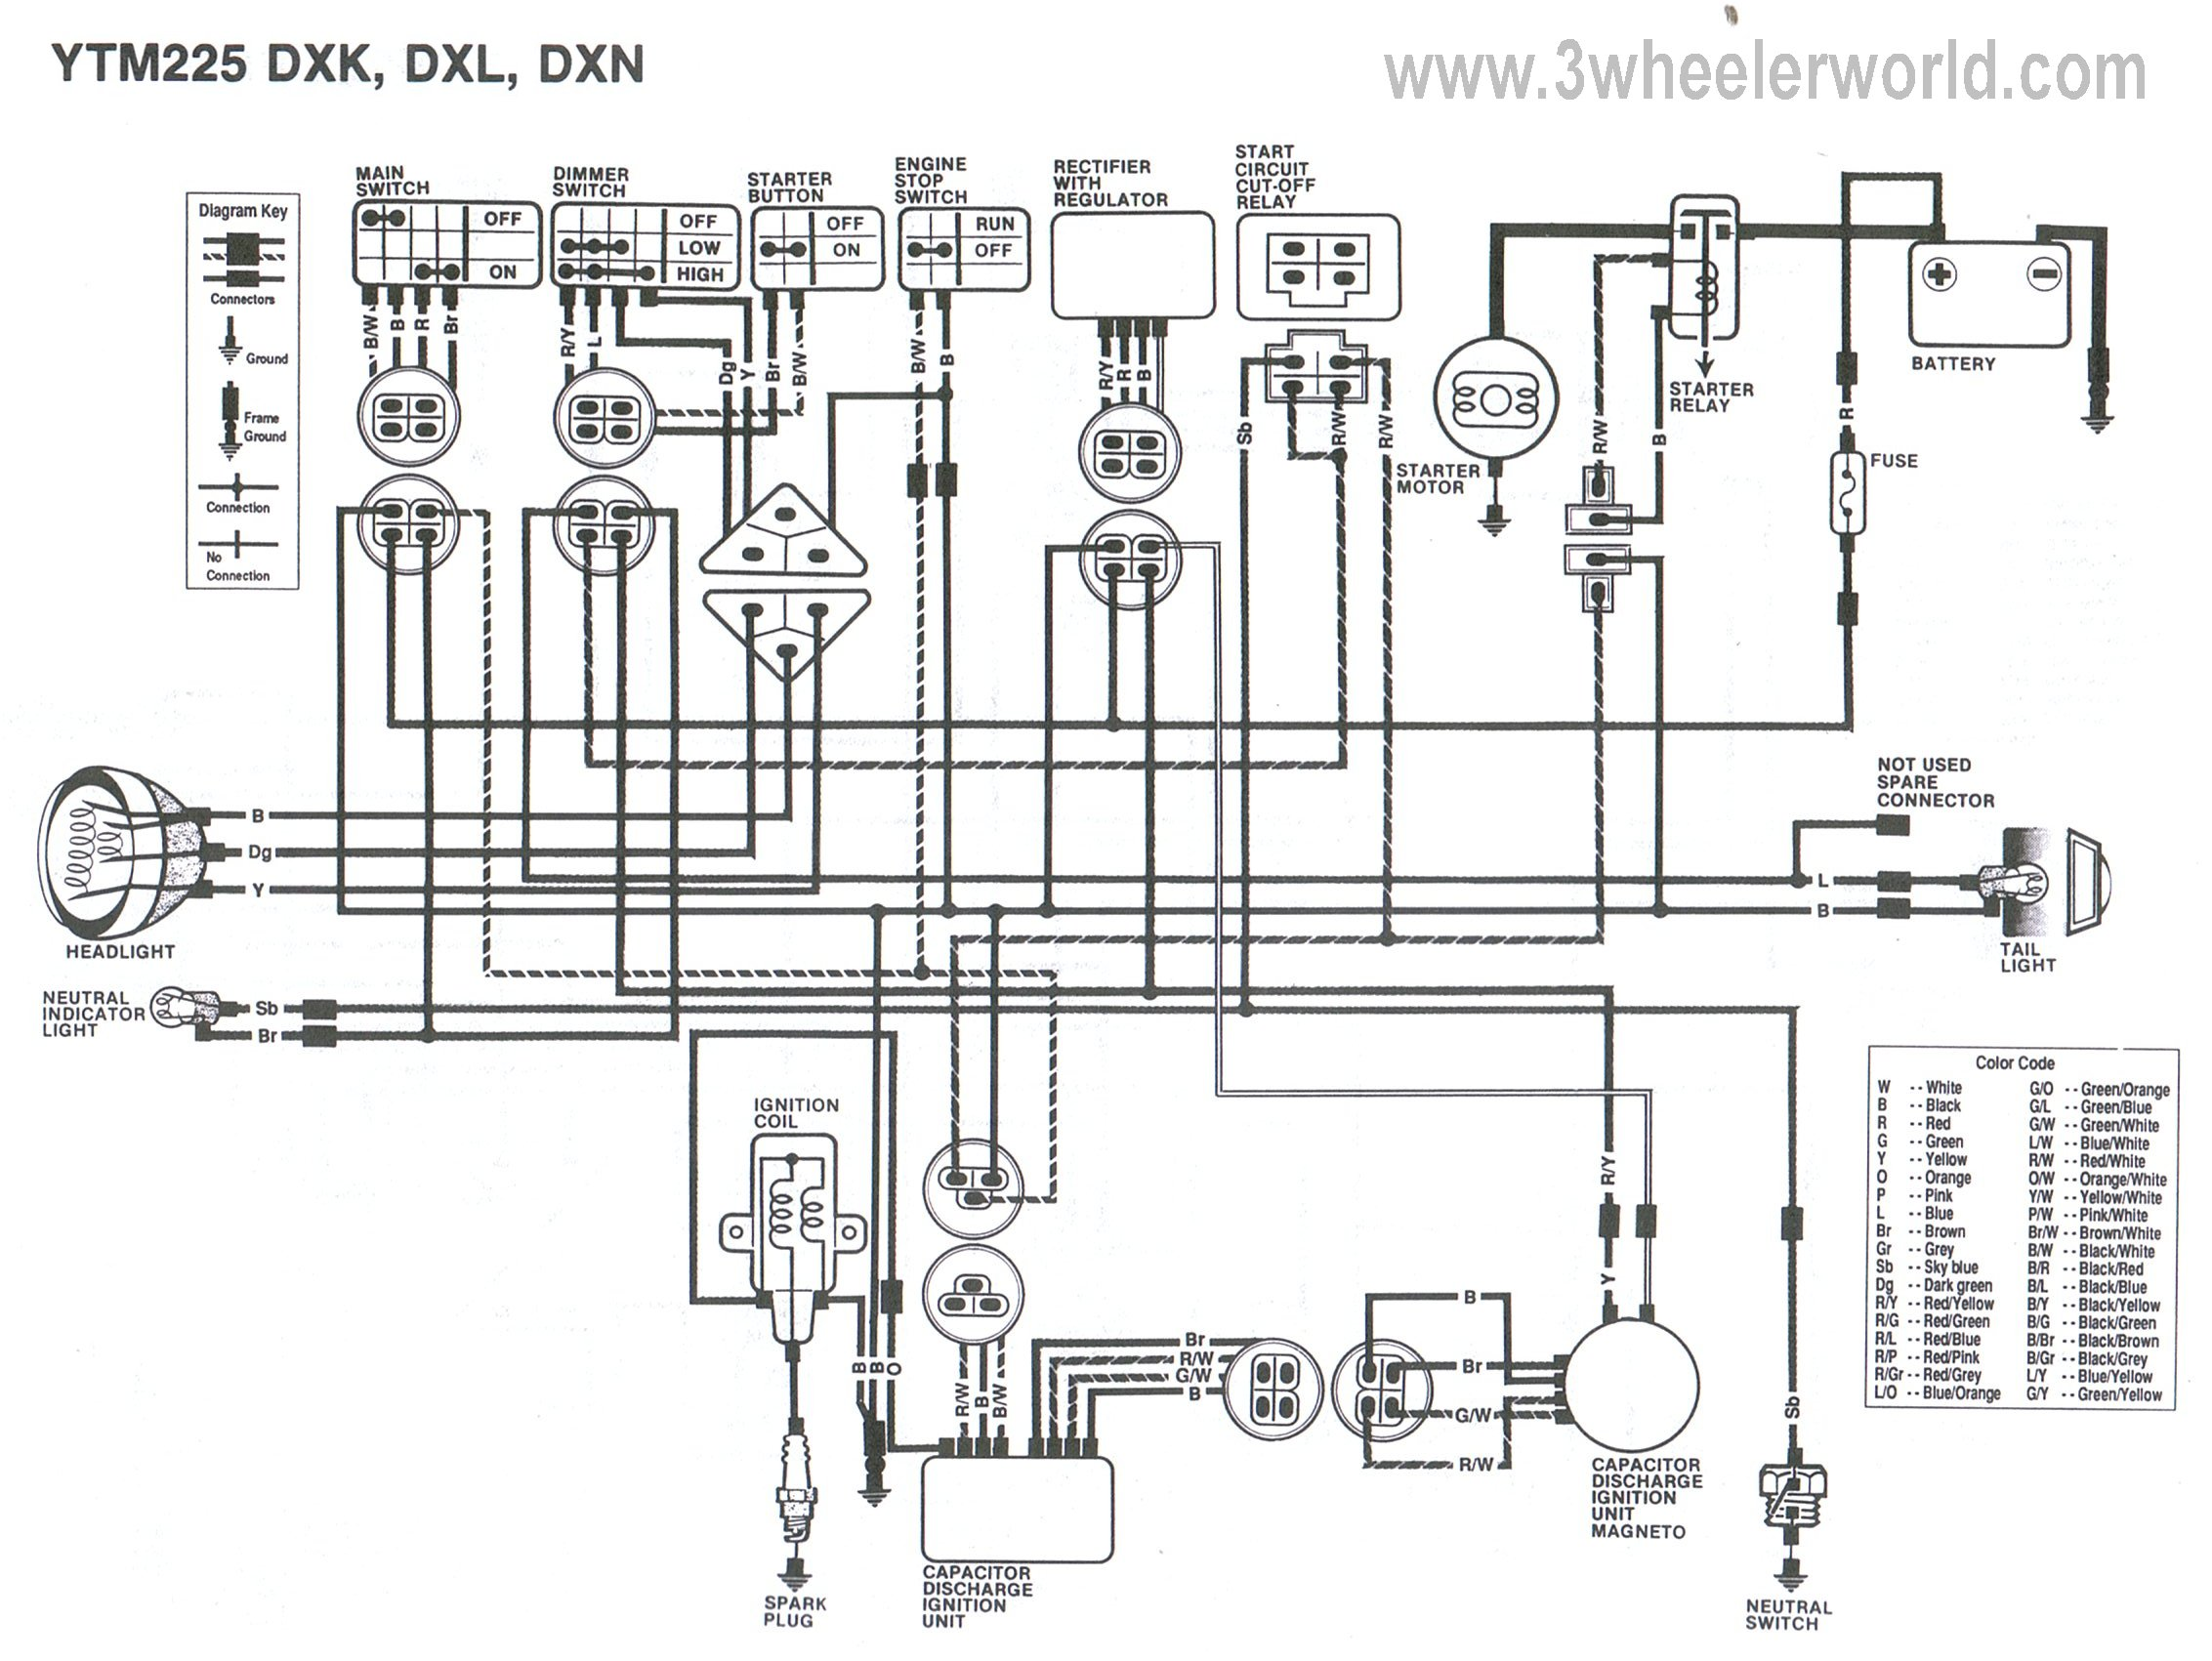 YTM225DXKDXLDXN 3 wheeler world tech help yamaha wiring diagrams  at crackthecode.co